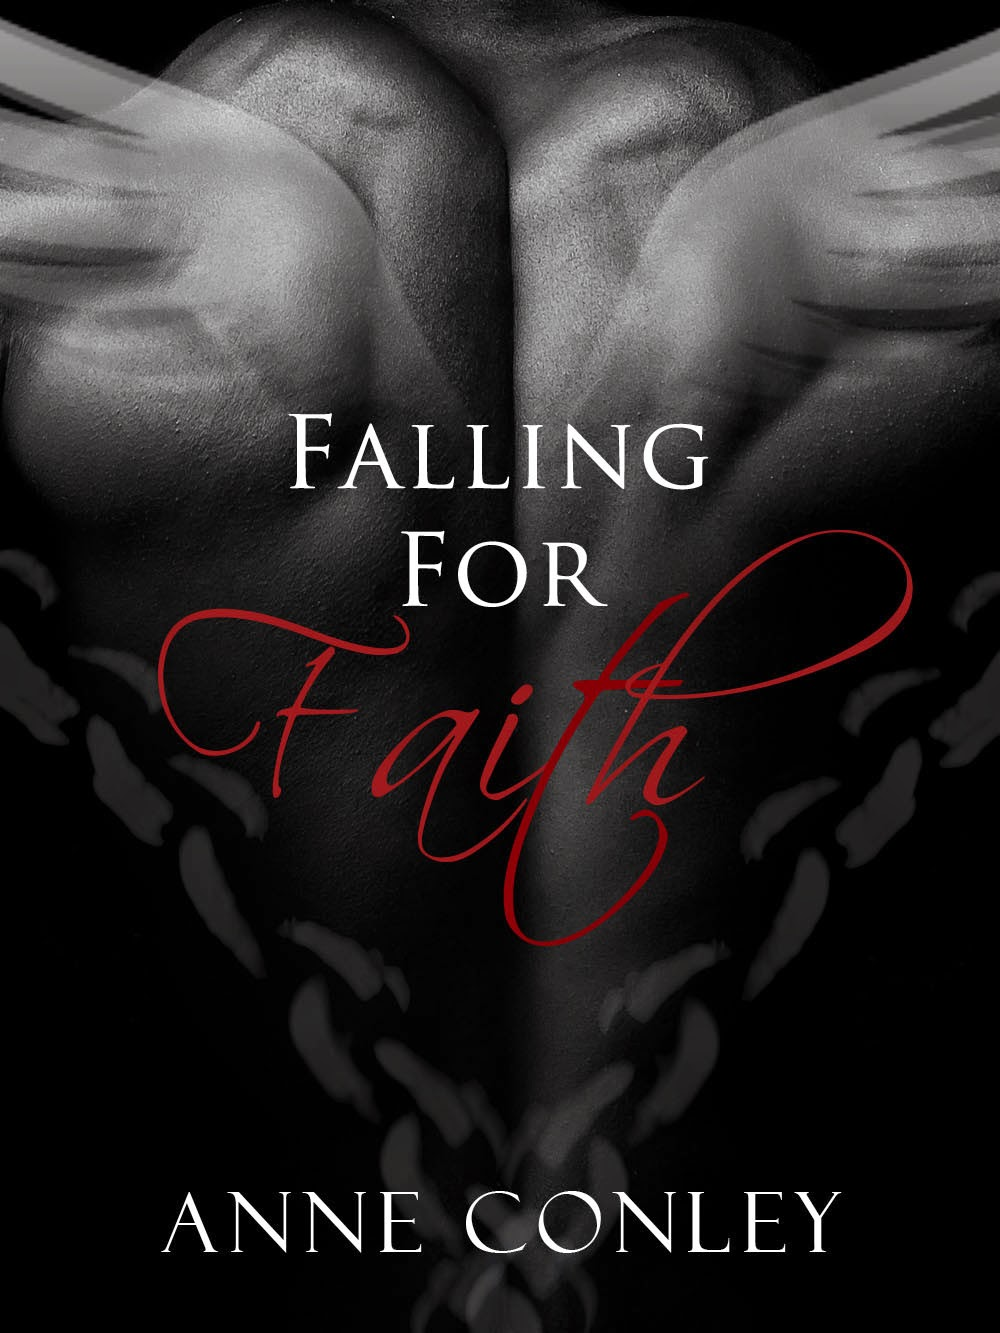 https://www.amazon.com/Falling-Faith-Four-Winds-Book-ebook/dp/B00MWGZOMO/ref=as_sl_pc_qf_sp_asin_til?tag=theconcor-20&linkCode=w00&linkId=VXS7SB7RWLHV3INU&creativeASIN=B00MWGZOMO